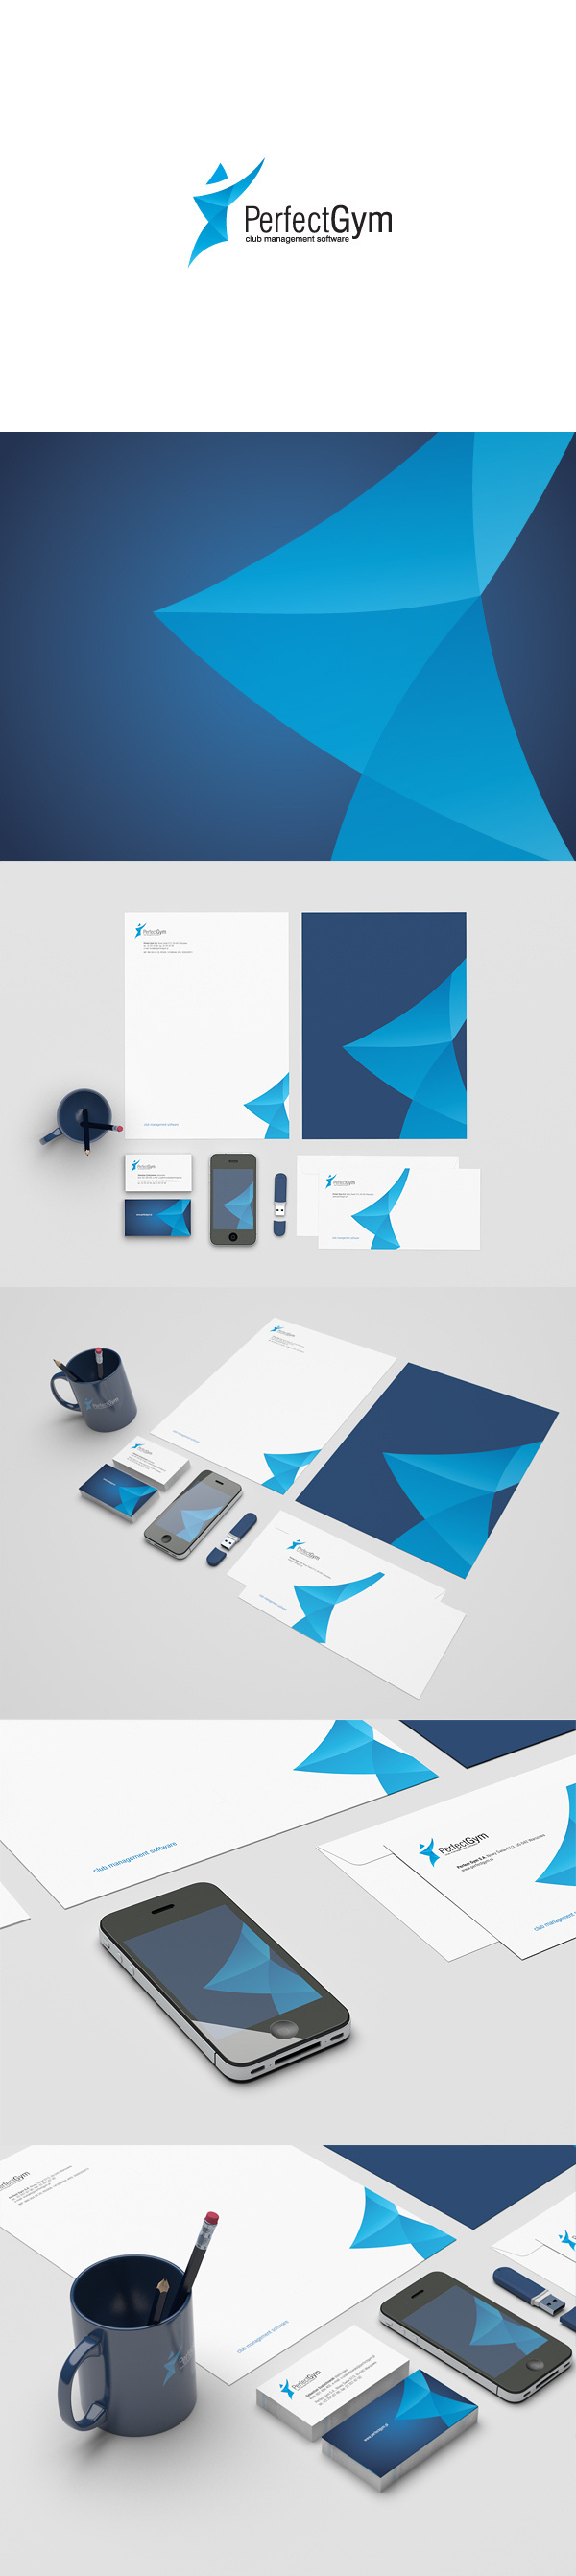 Perfect Gym #prints #branding #gym #identity #for #perfect #logo #management #so #club